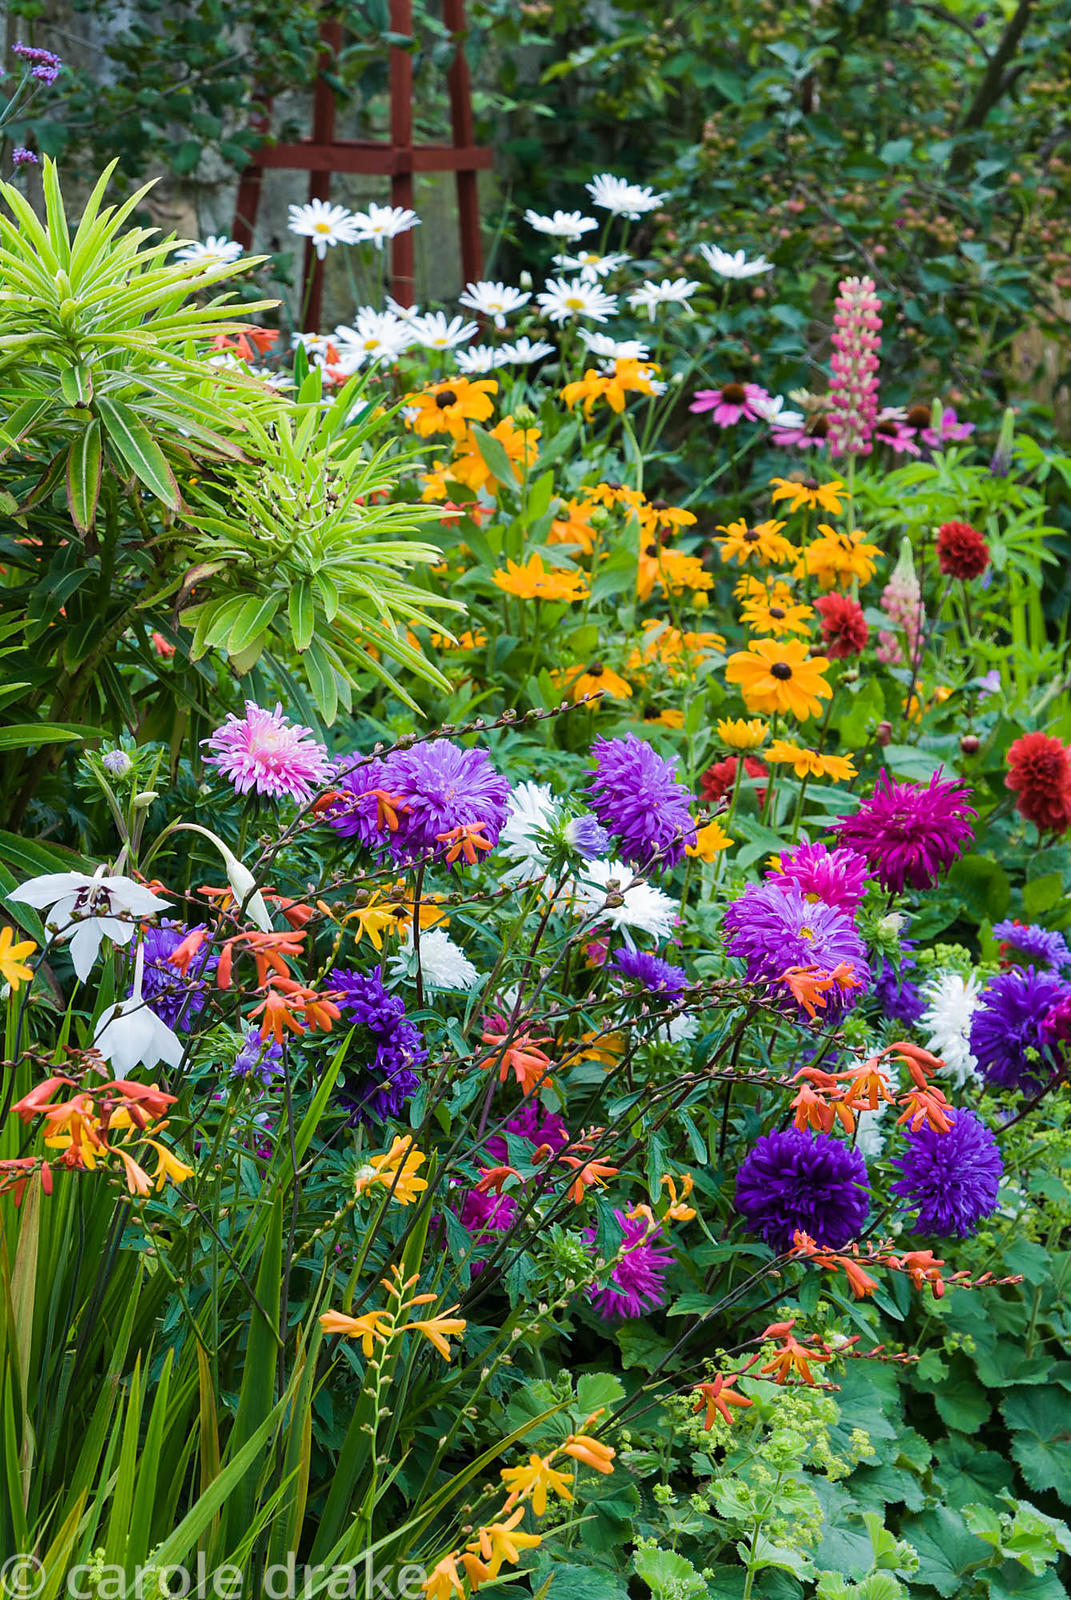 Decorative border punctuated by red wooden obelisks features brightly coloured dahlias, Rudbeckia 'Marmalade', Aster 'Ostrich...